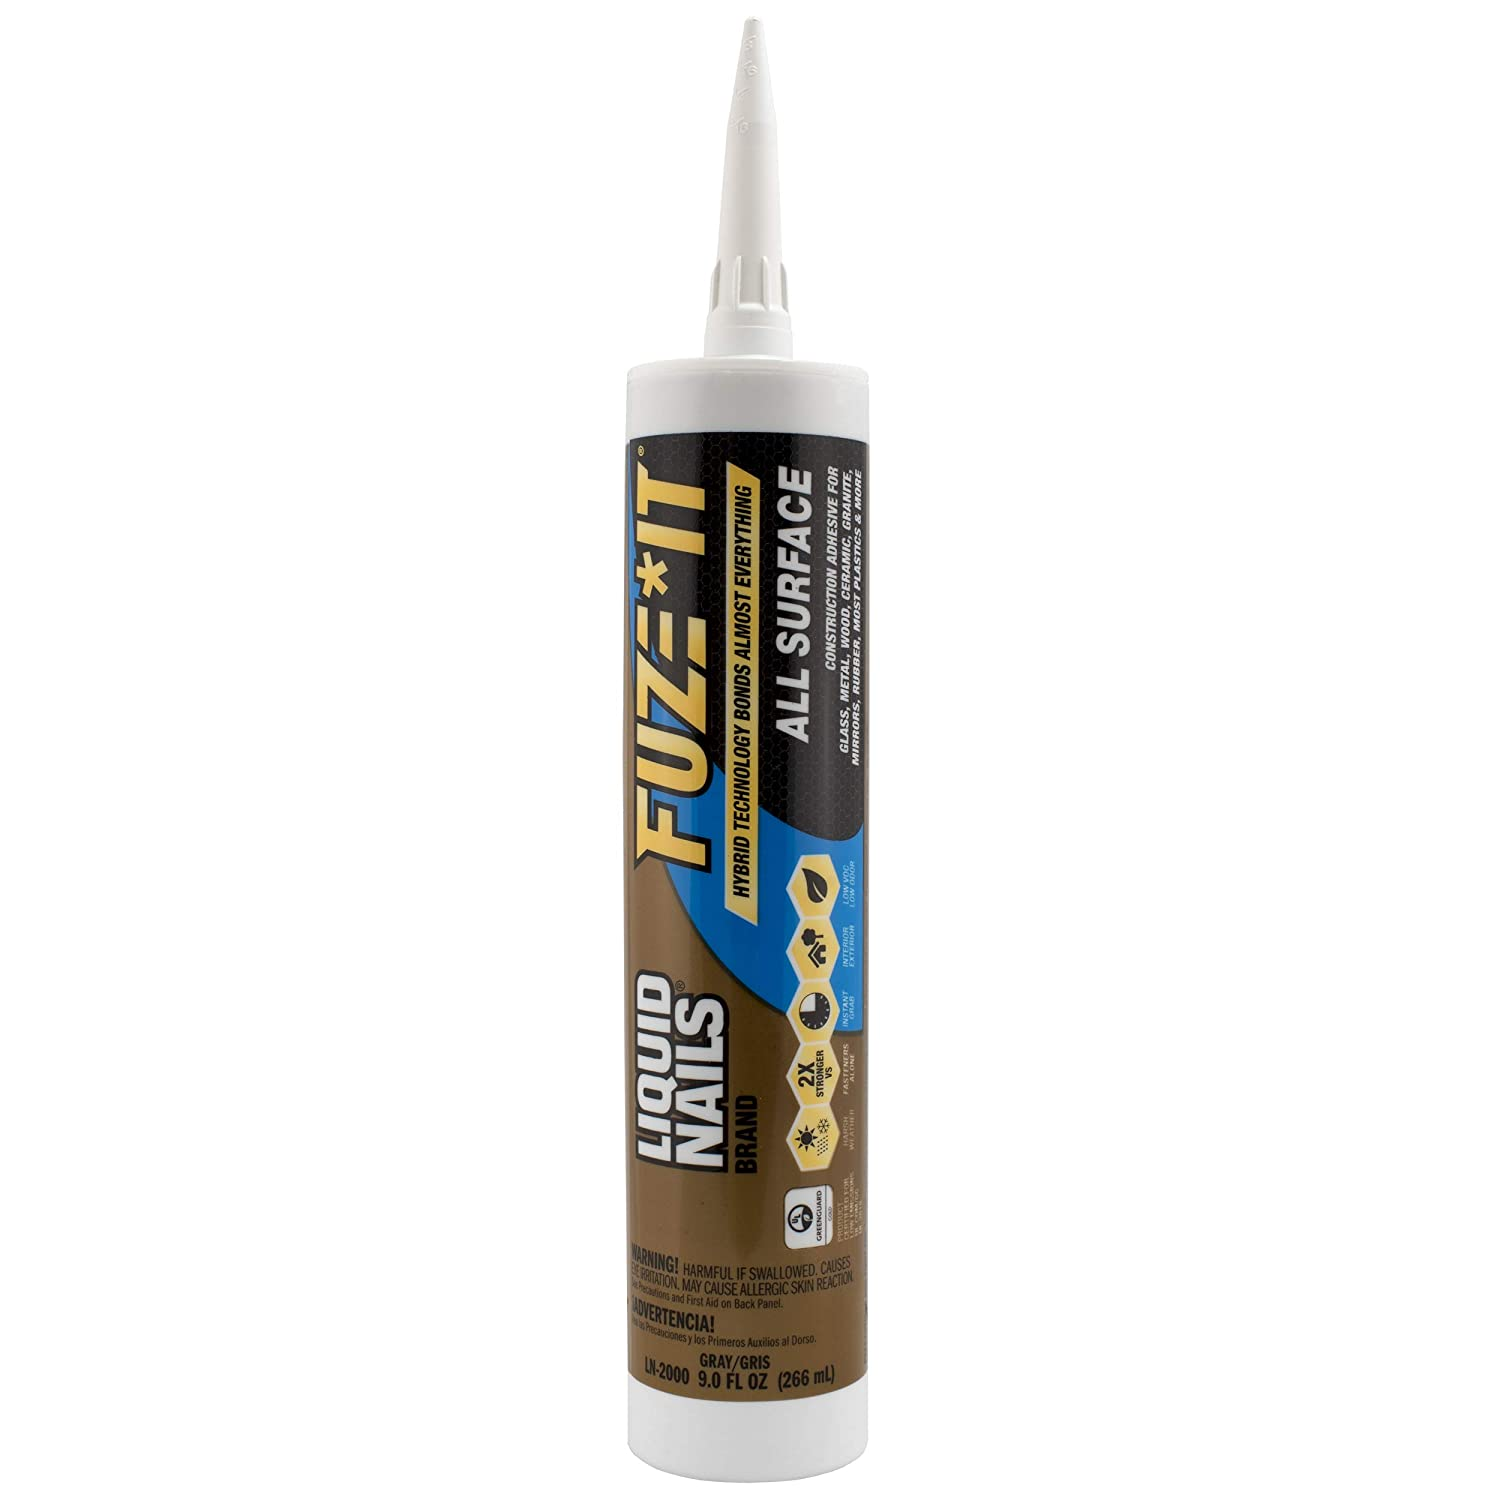 LIQUID NAILS LN-2000 FuzeIt All Surface Construction Adhesive (9-Ounce)